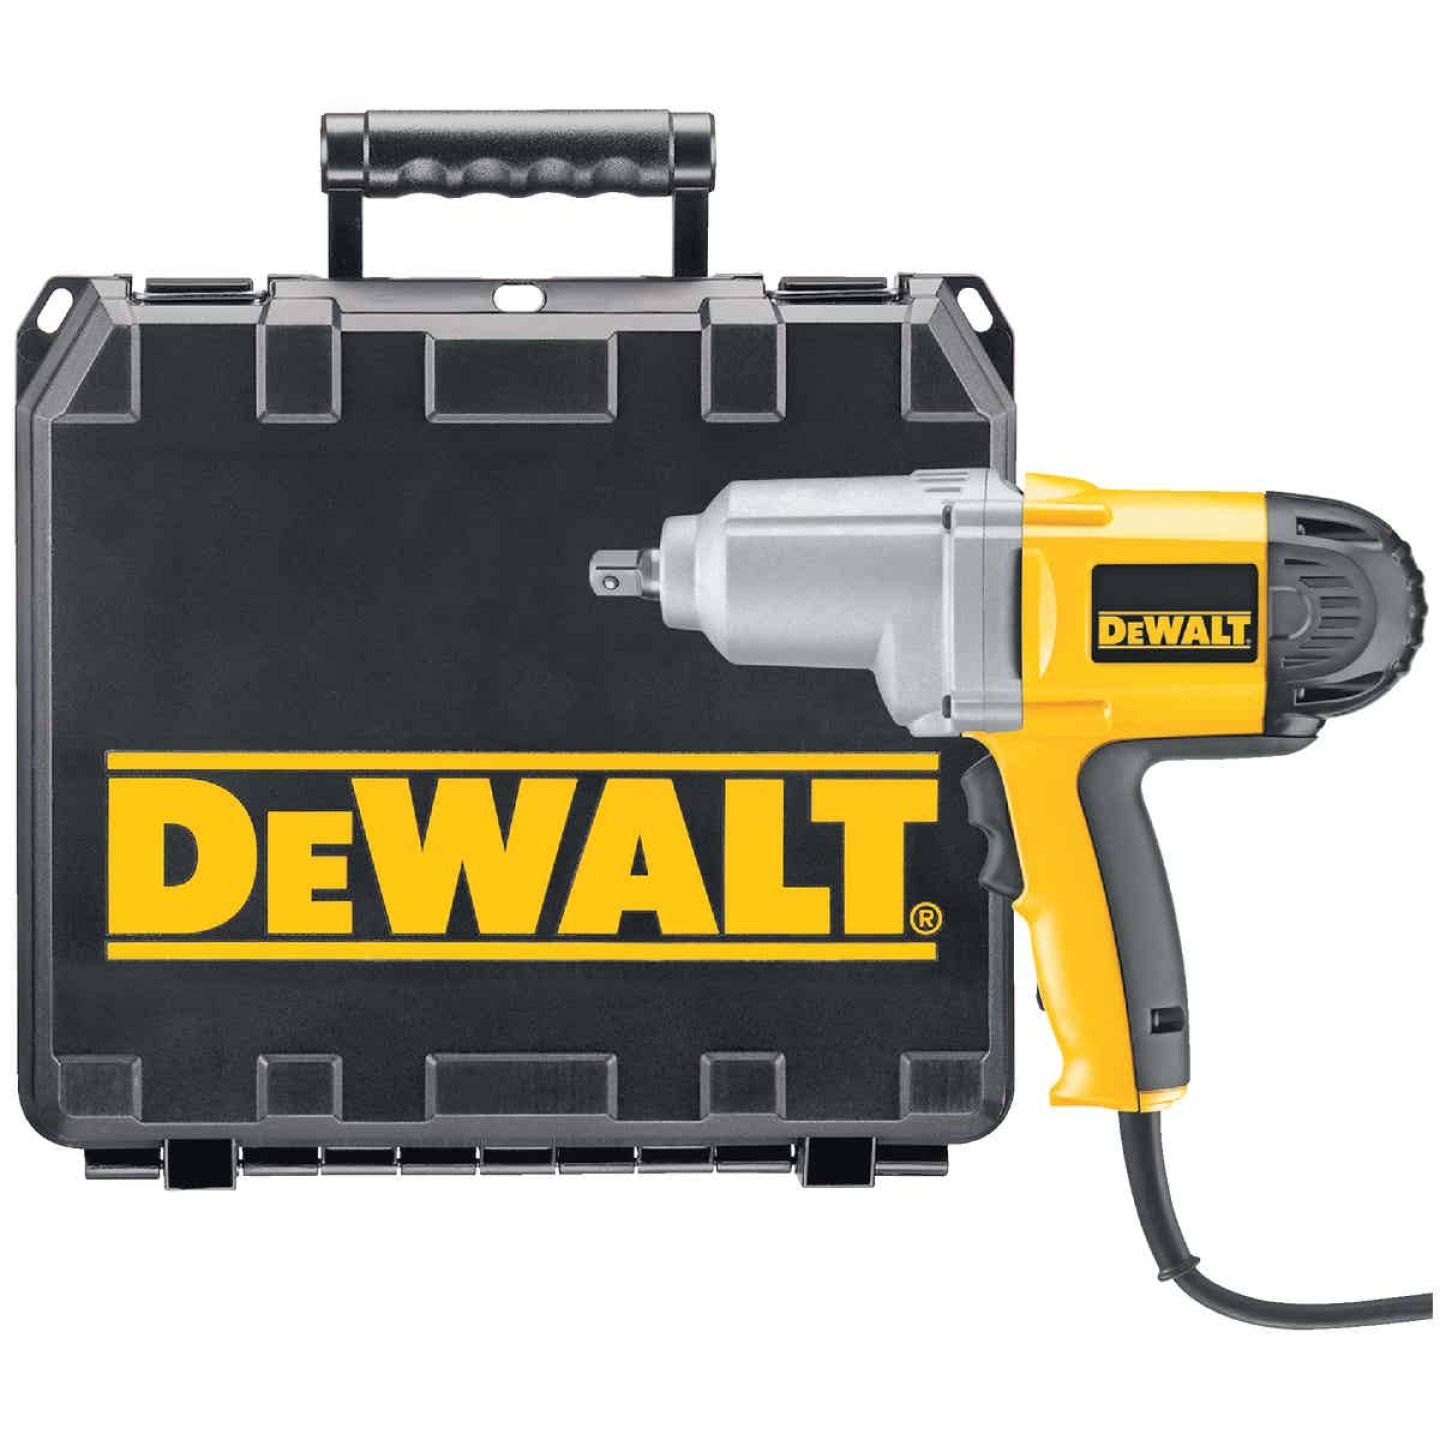 DeWalt 1/2 In. Impact Wrench with Detent Pin Anvil Image 6